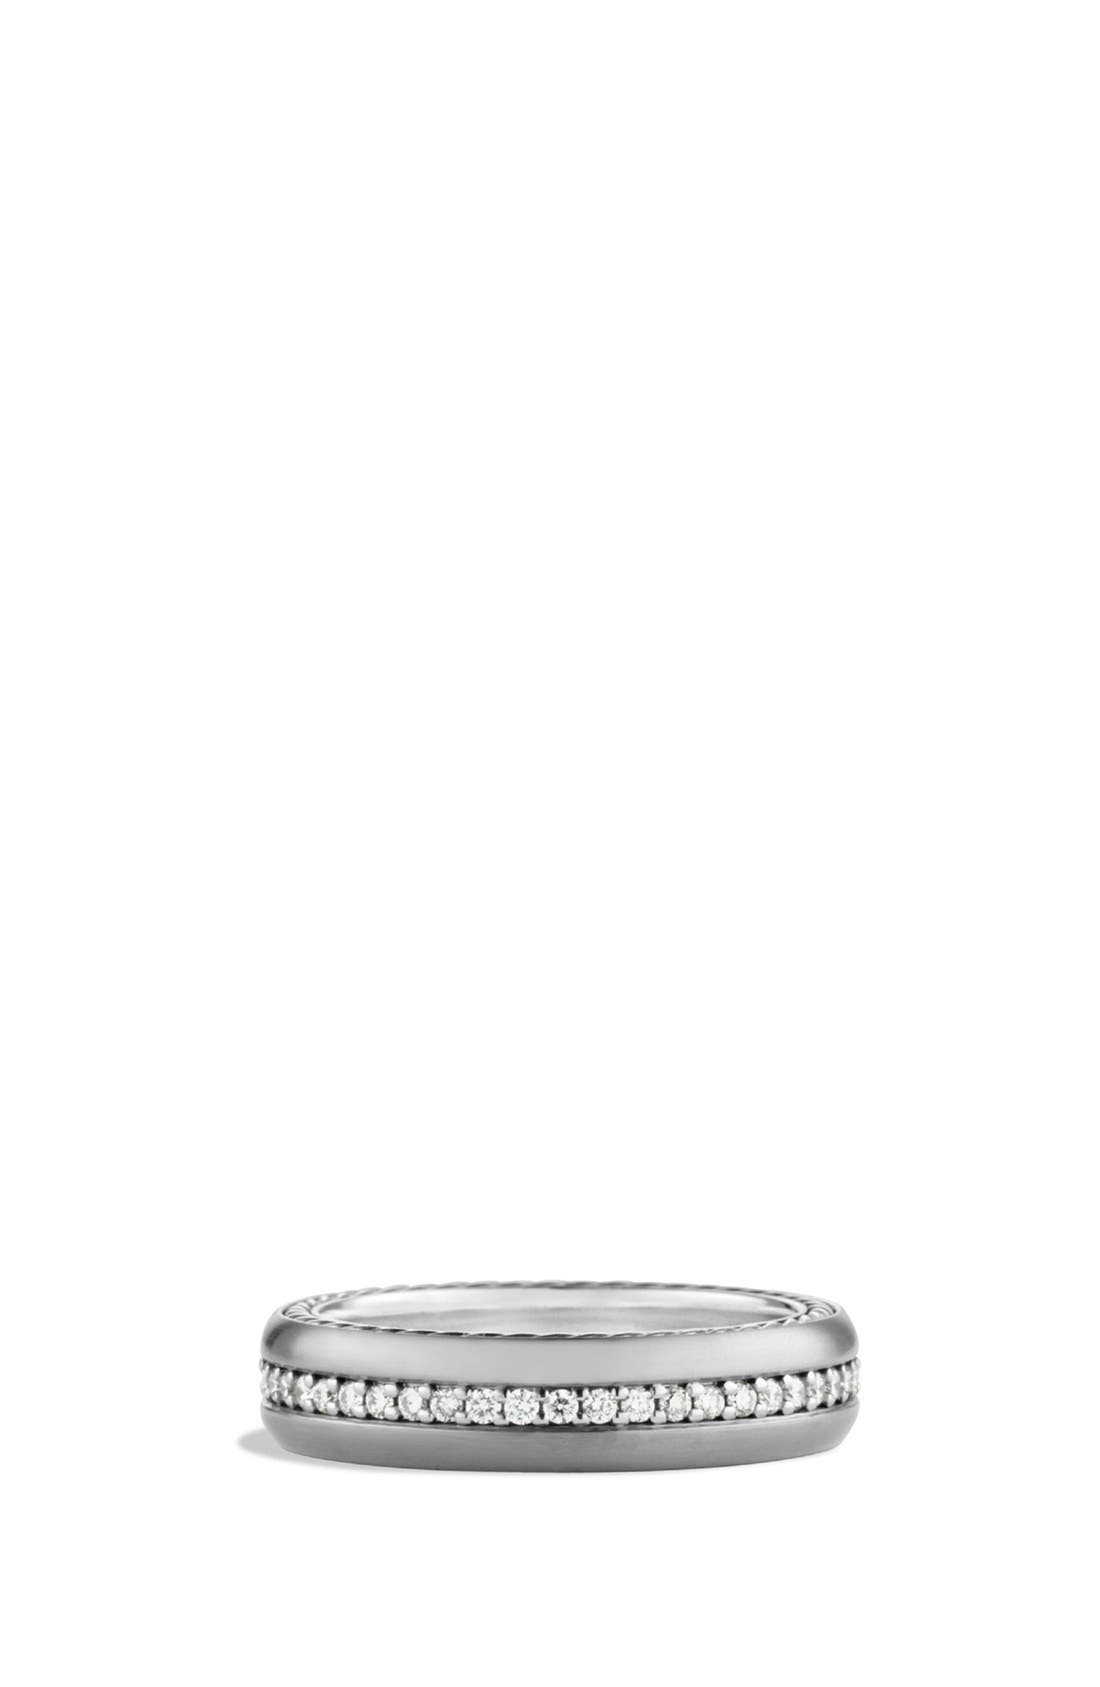 'Streamline' Narrow Band Ring with Diamonds,                         Main,                         color, DIAMOND